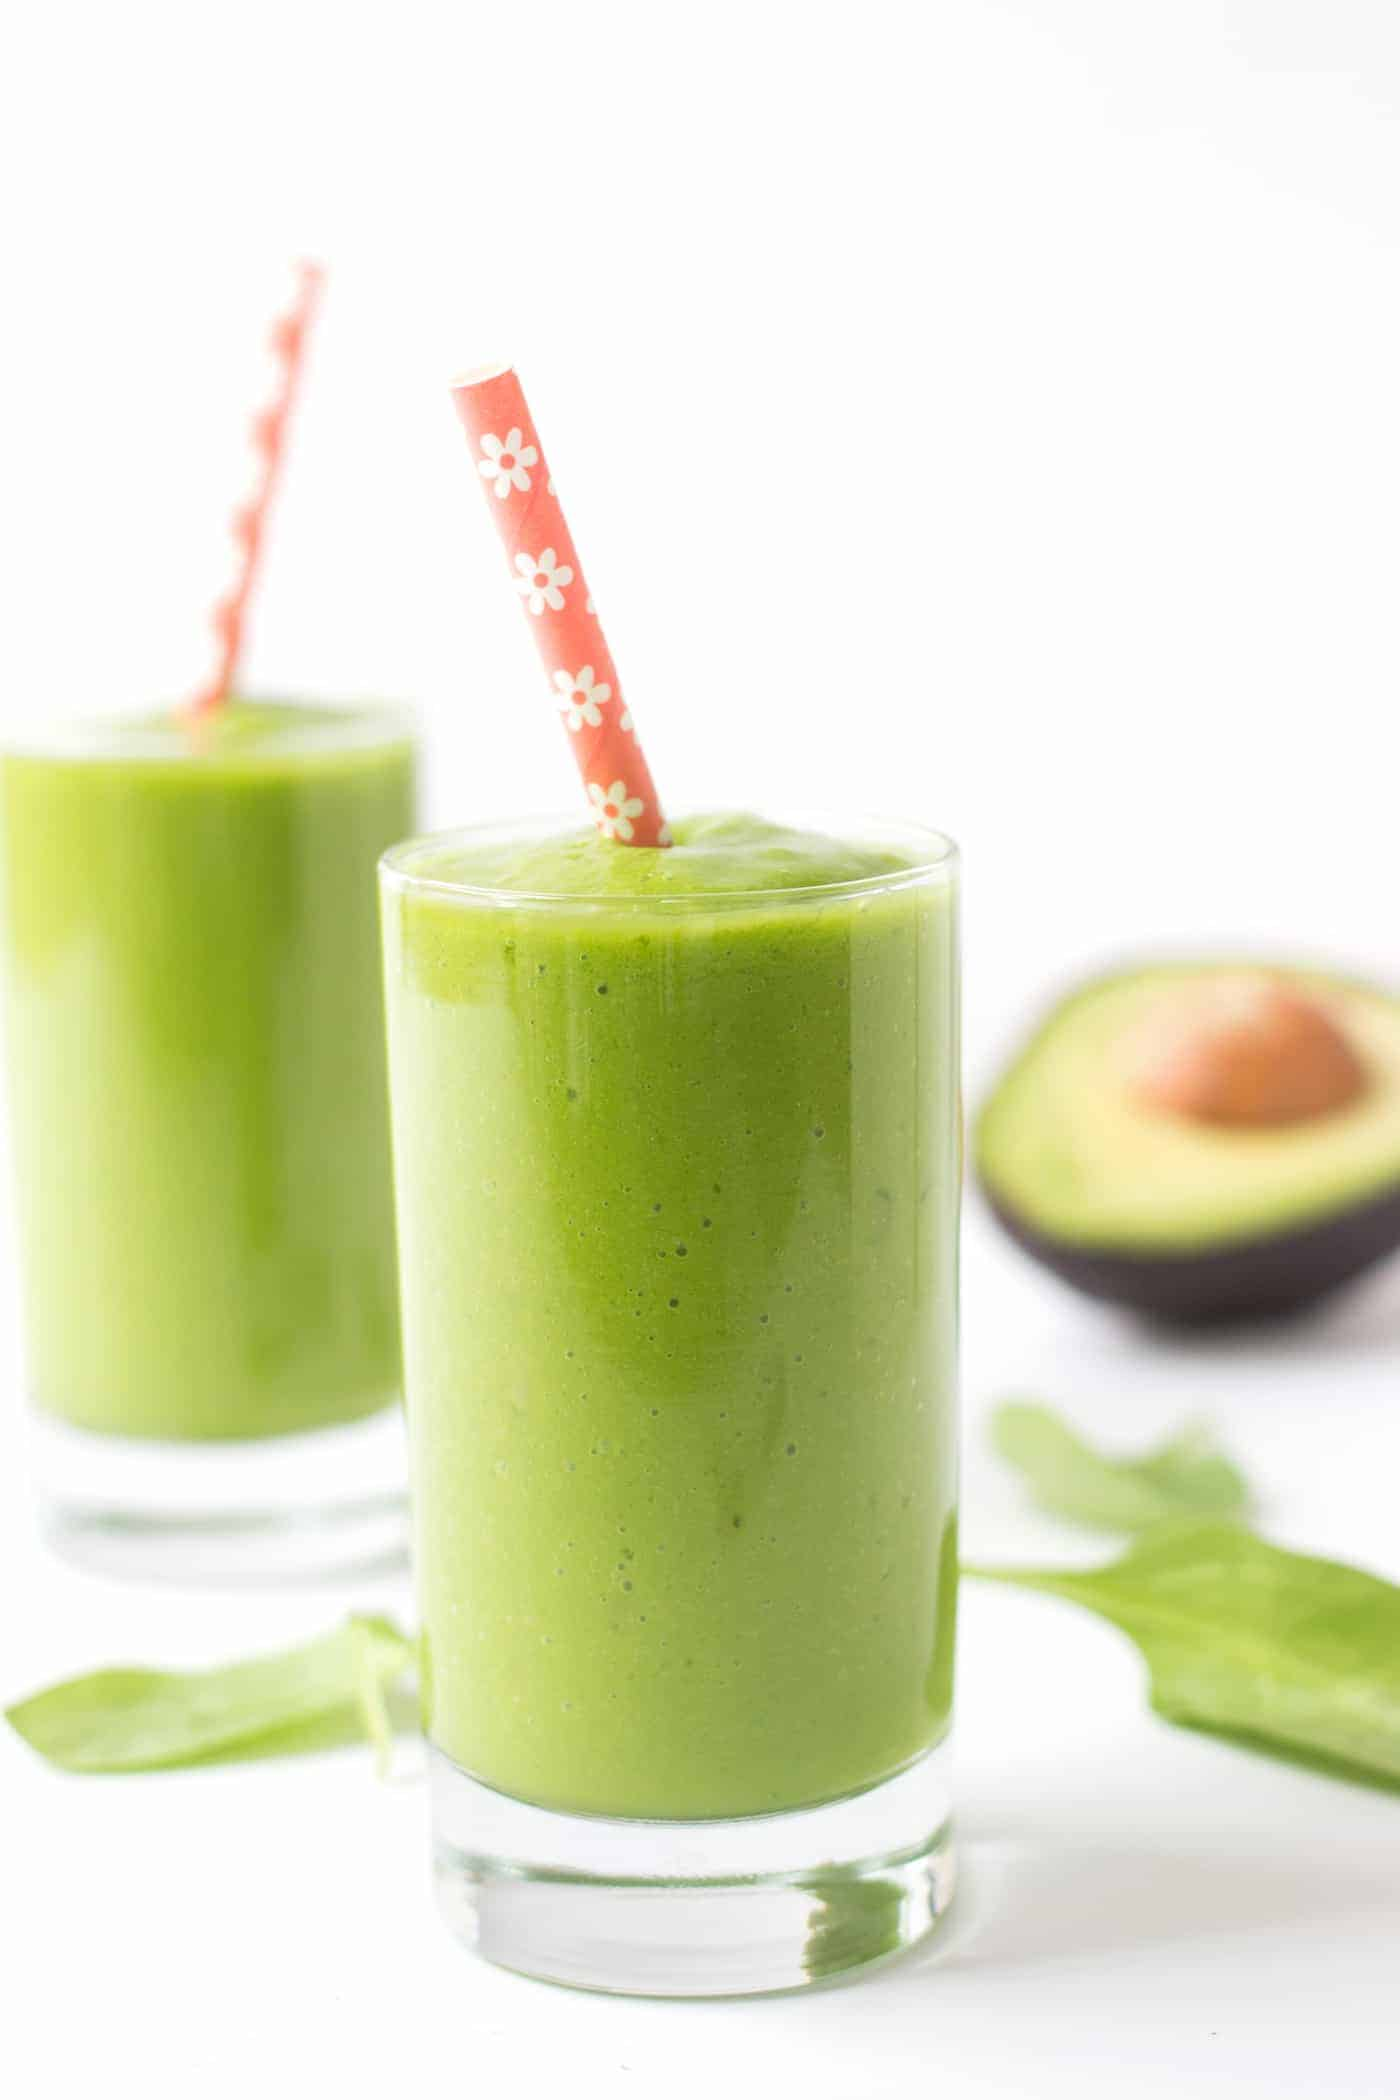 Alyssa's Favorite Green Smoothie with greens, avocado and SO much goodness!